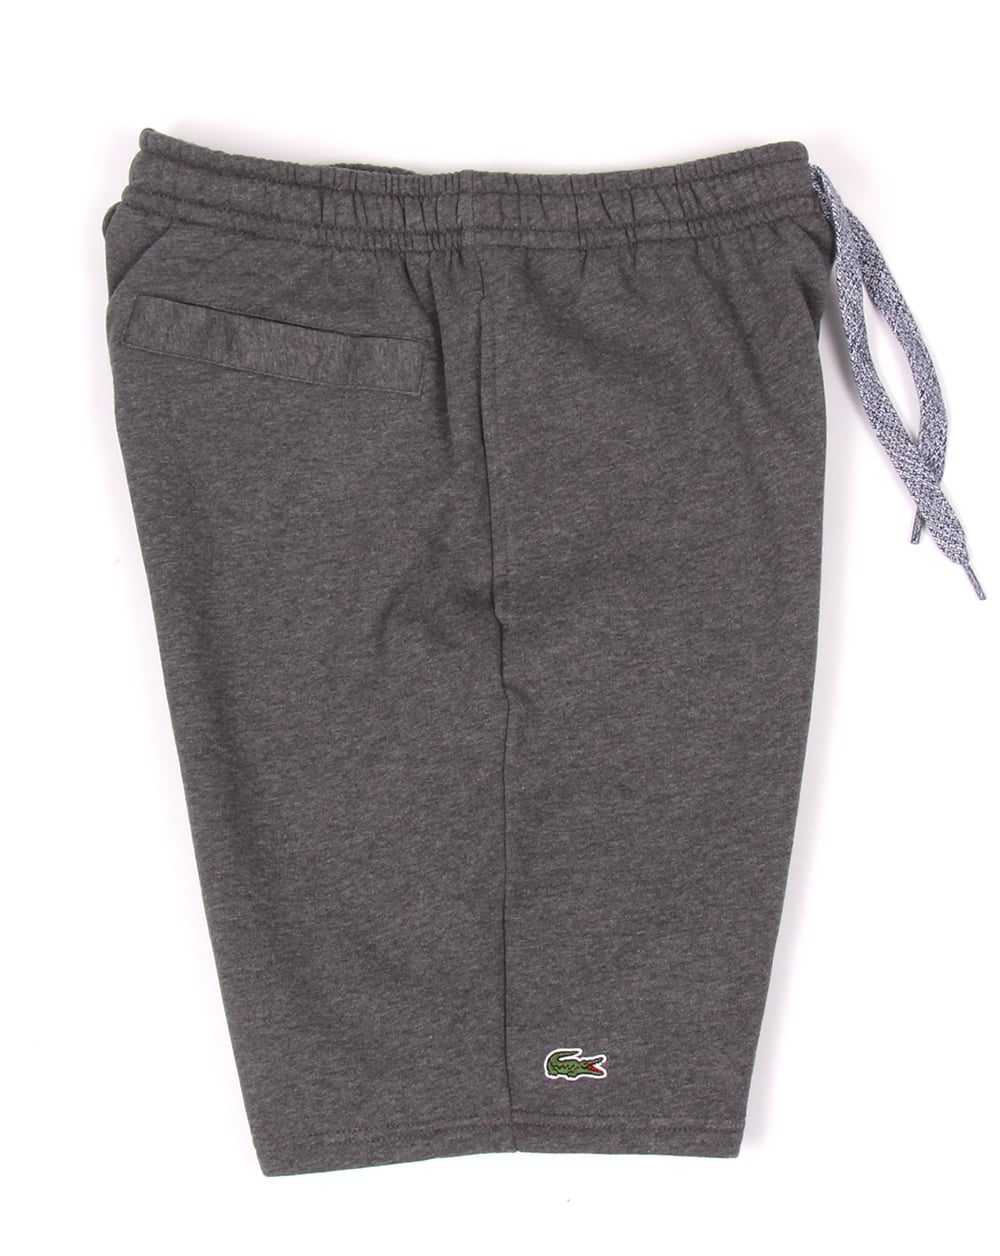 aca0a9d90de266 Lacoste Sport Cotton Fleece Shorts Dark Grey